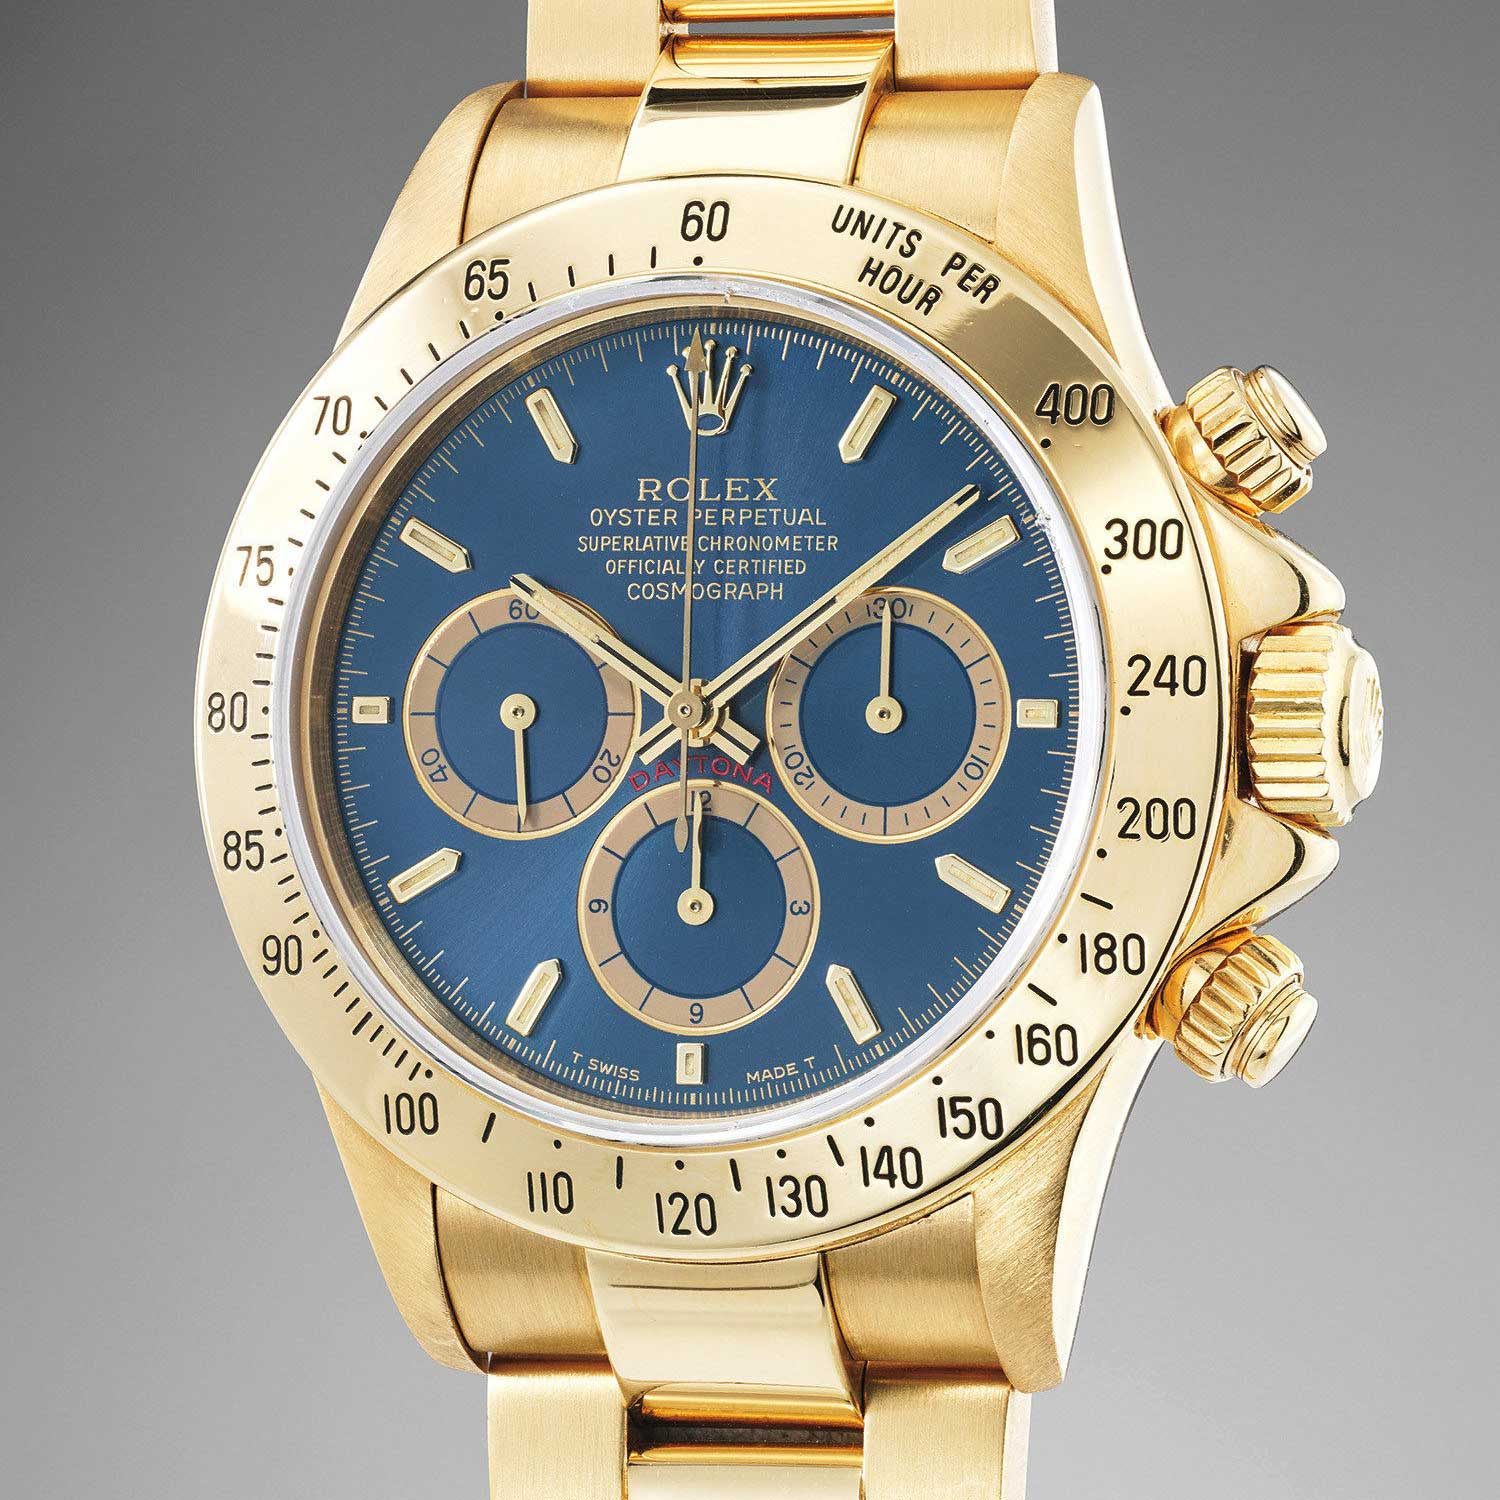 Lot 173: Rolex Ref. 16528. An extremely rare and highly attractive yellow gold chronograph wristwatch with blue dial and bracelet